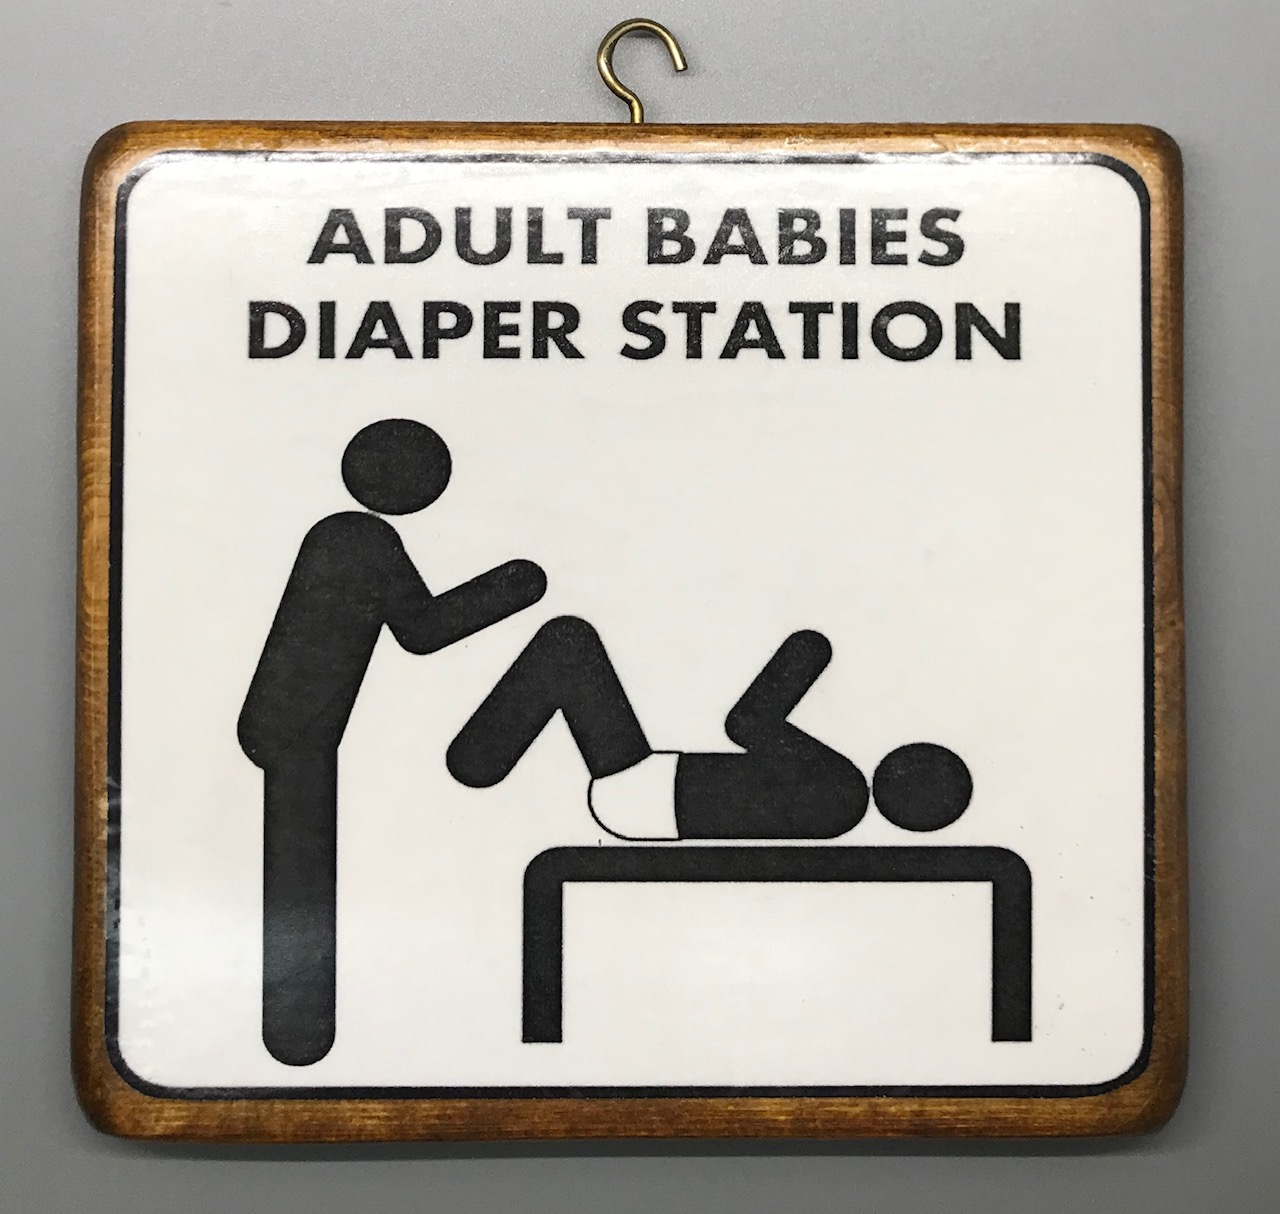 Adult Baby Diaper Station Plaque - Male Version